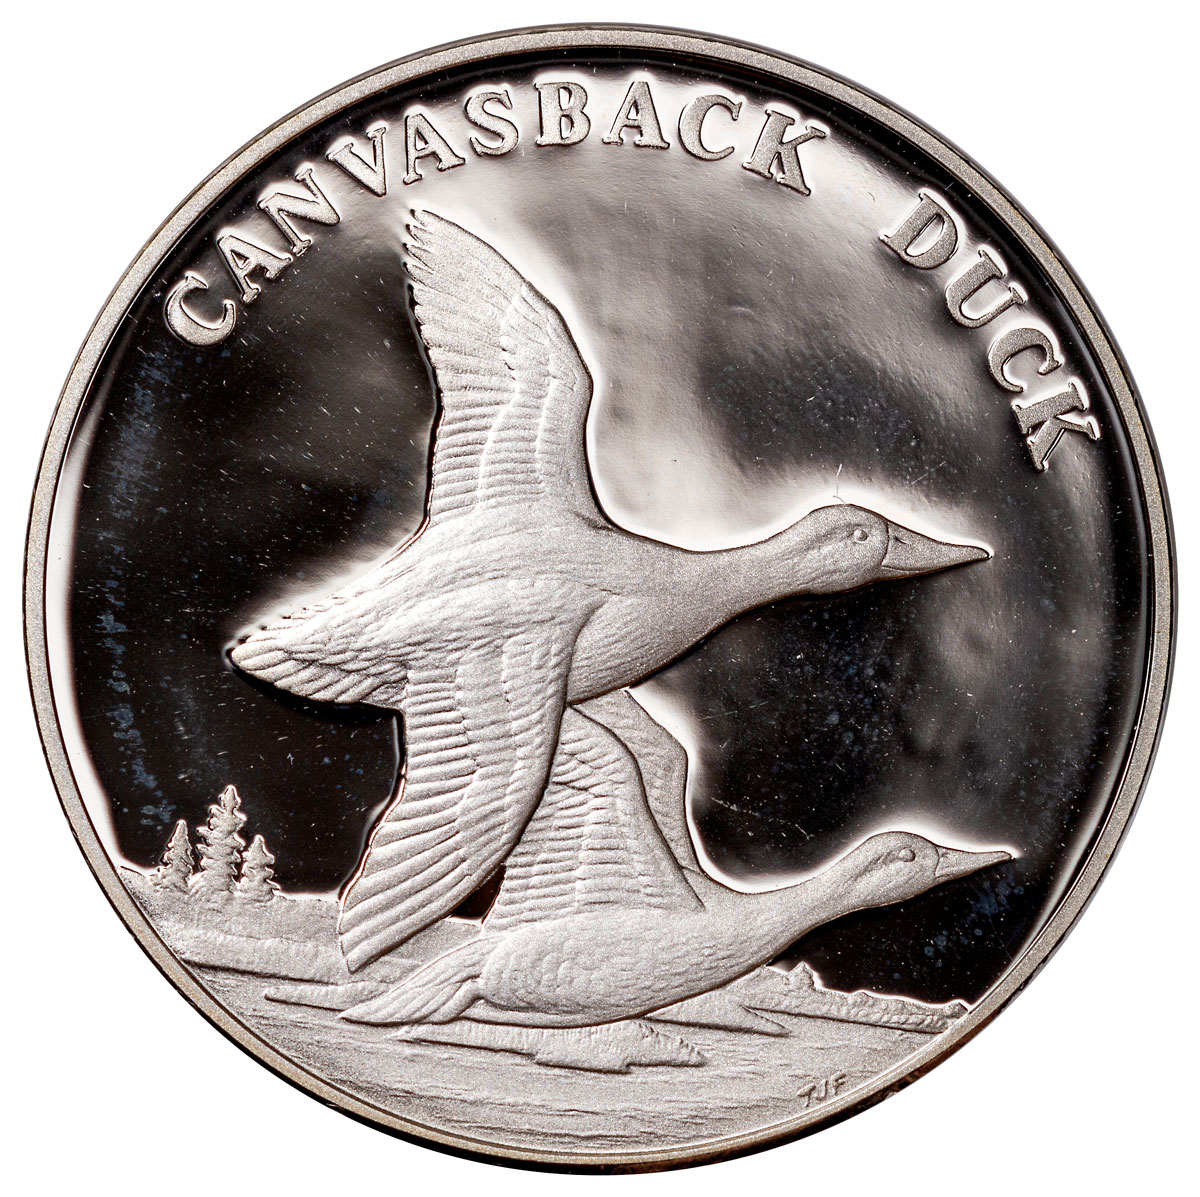 2003 United States National Wildlife Refuge Canvasback Duck Silver Proof Medal GEM Proof